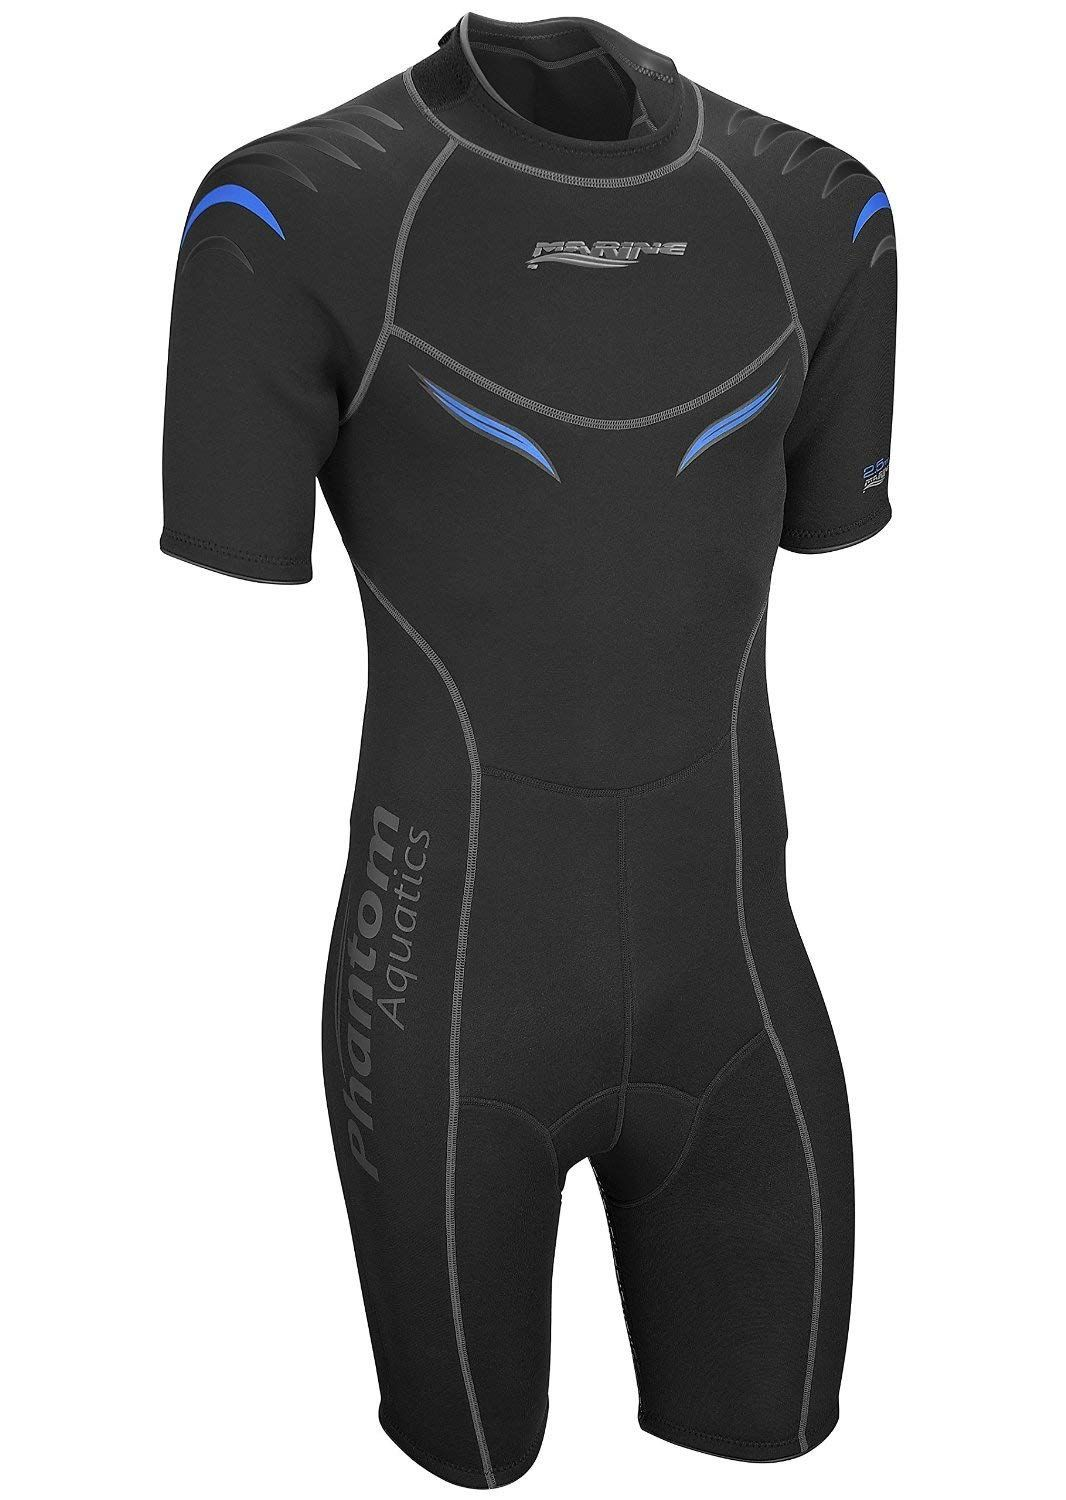 0b99fb4769 Phantom Aquatics Marine Men s Shorty Wetsuit. Phantom Aquatics Marine Men s  Shorty Wetsuit Wetsuit